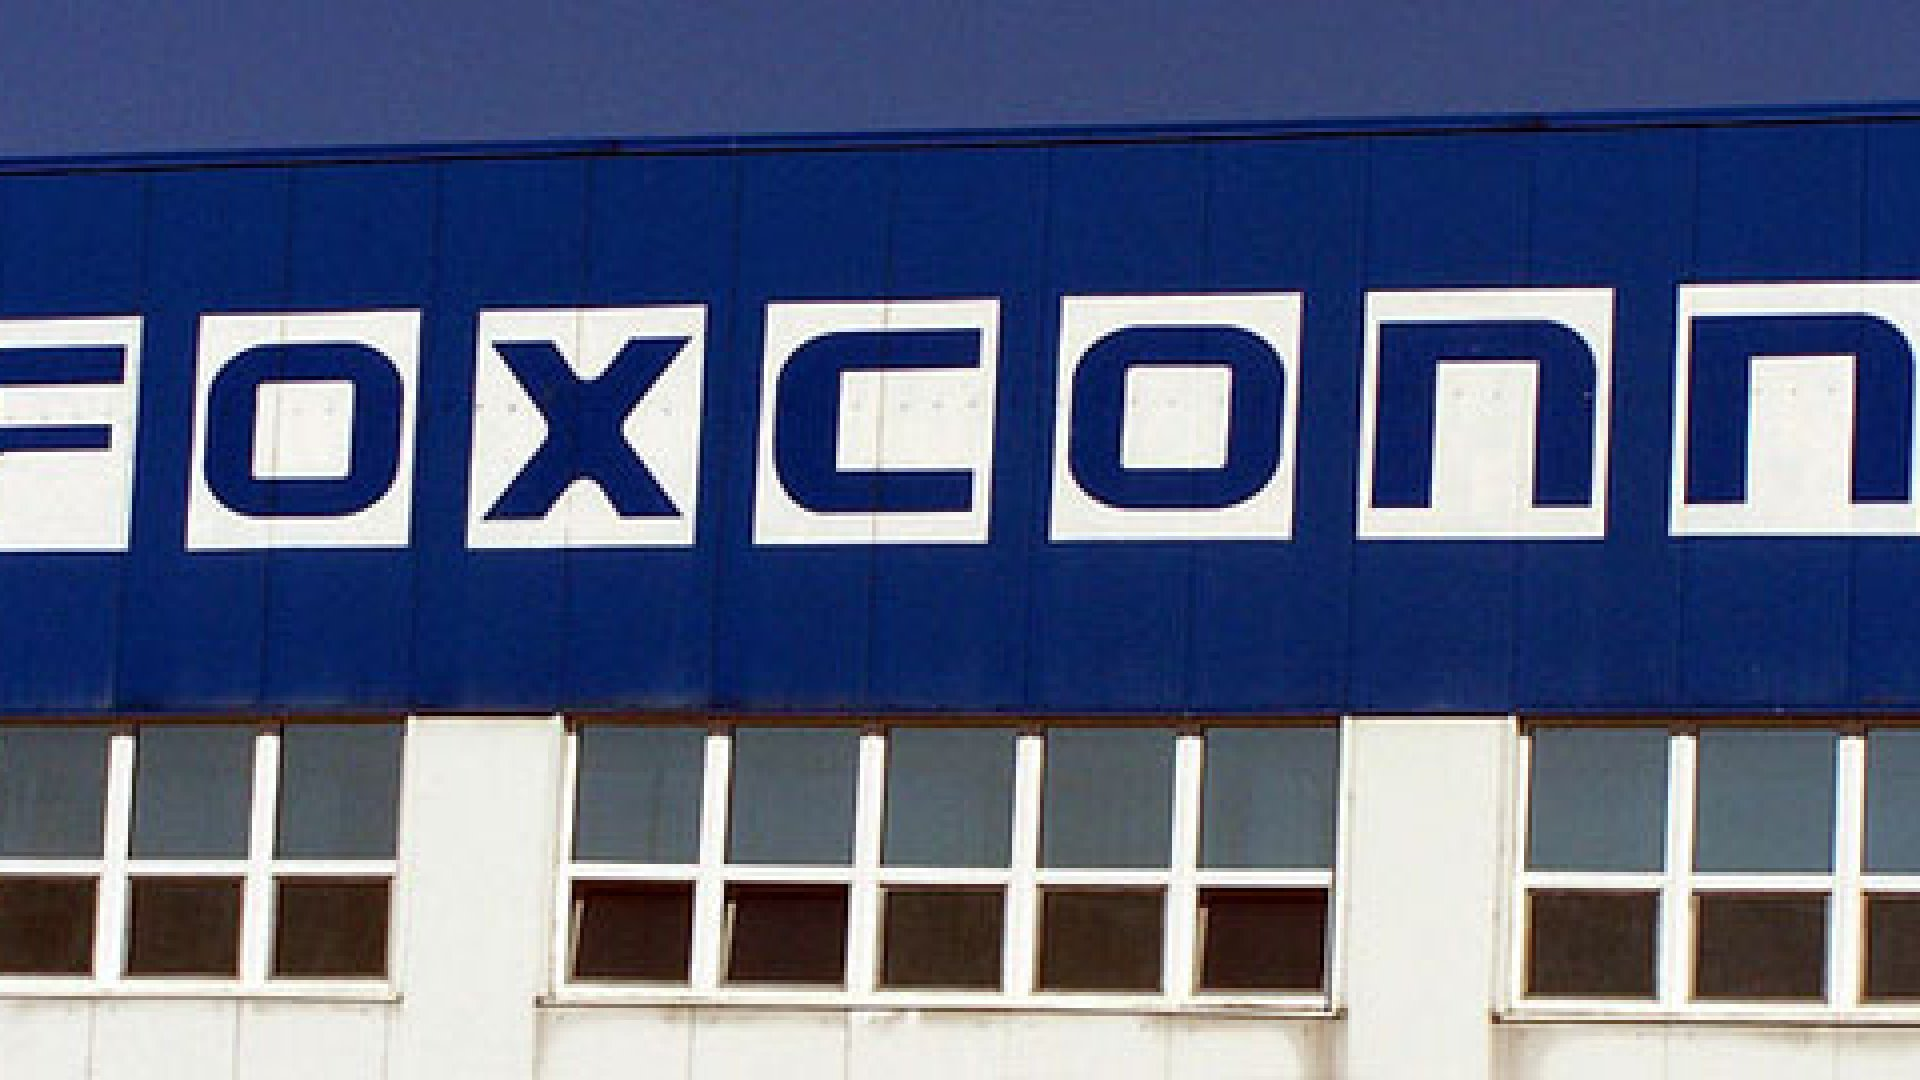 After a series of suicides at Foxconn, a plant in China that produces the iPhone, Apple has been under fire for poor working conditions in its suppliers' factories.